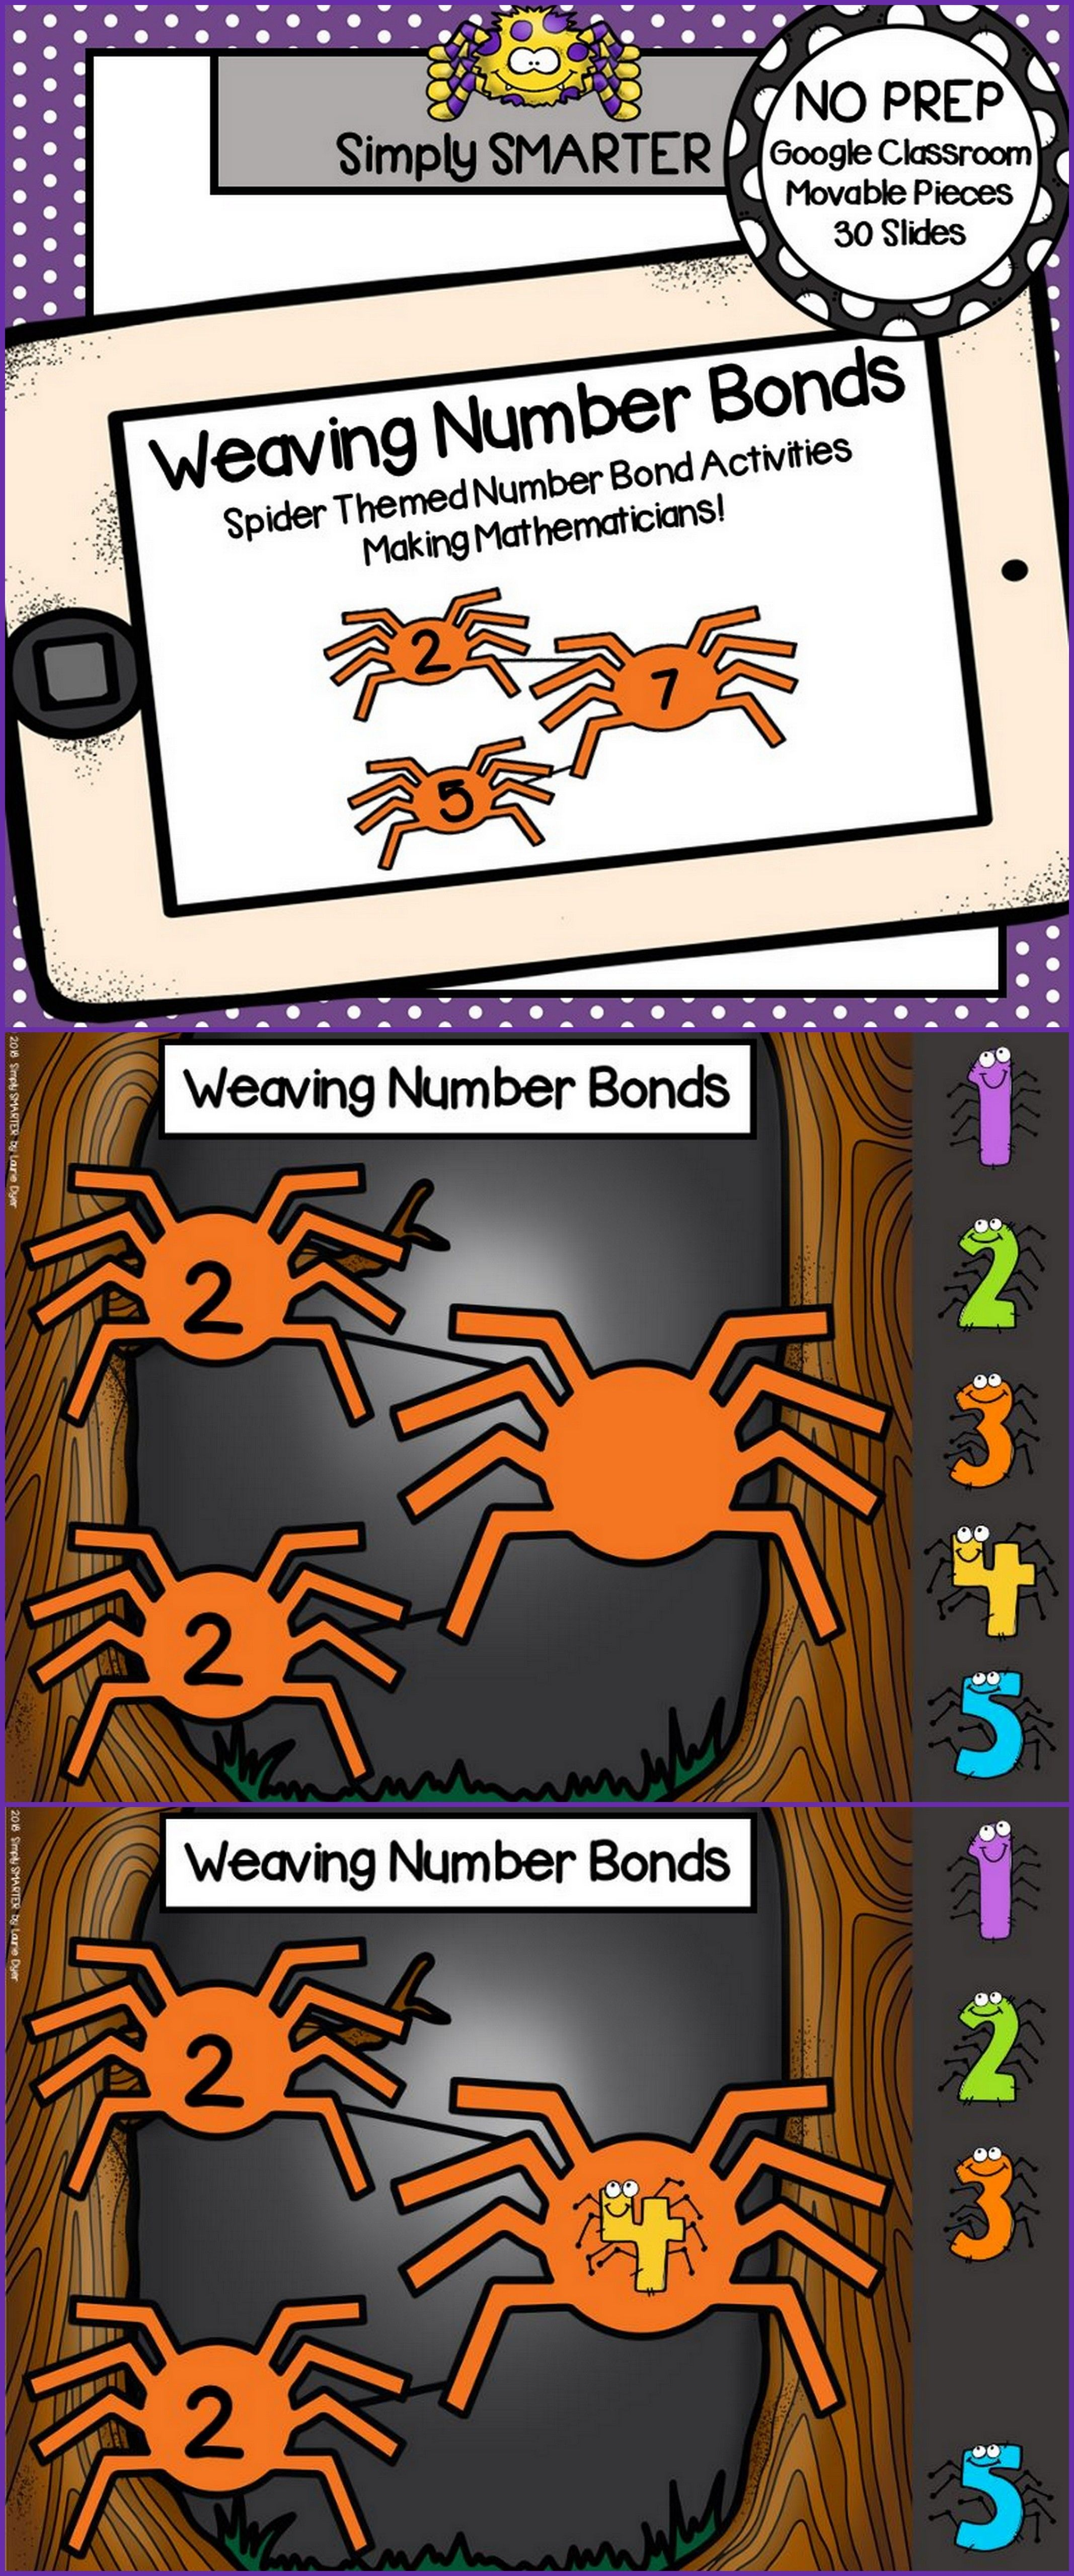 Spider Themed Number Bond Activities For Classroom